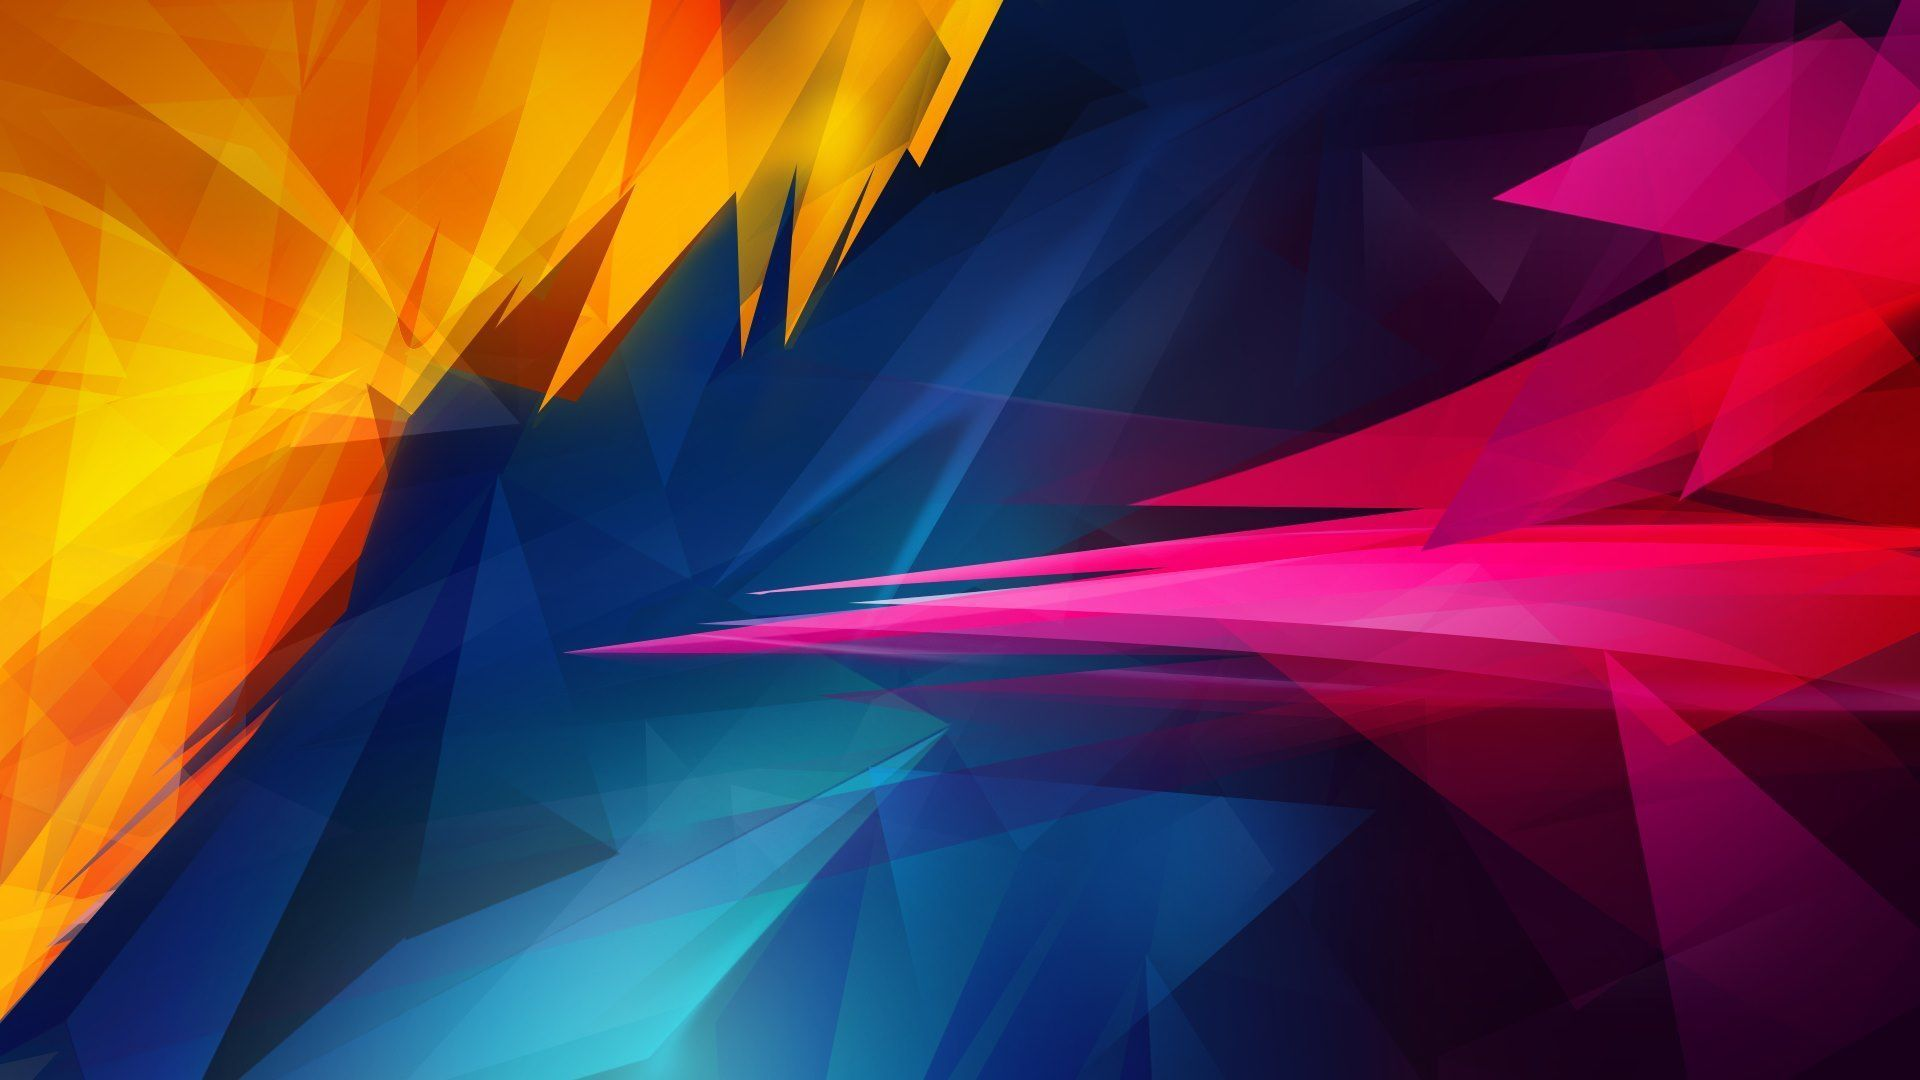 4k Abstract Wallpapers Top Free 4k Abstract Backgrounds Wallpaperaccess